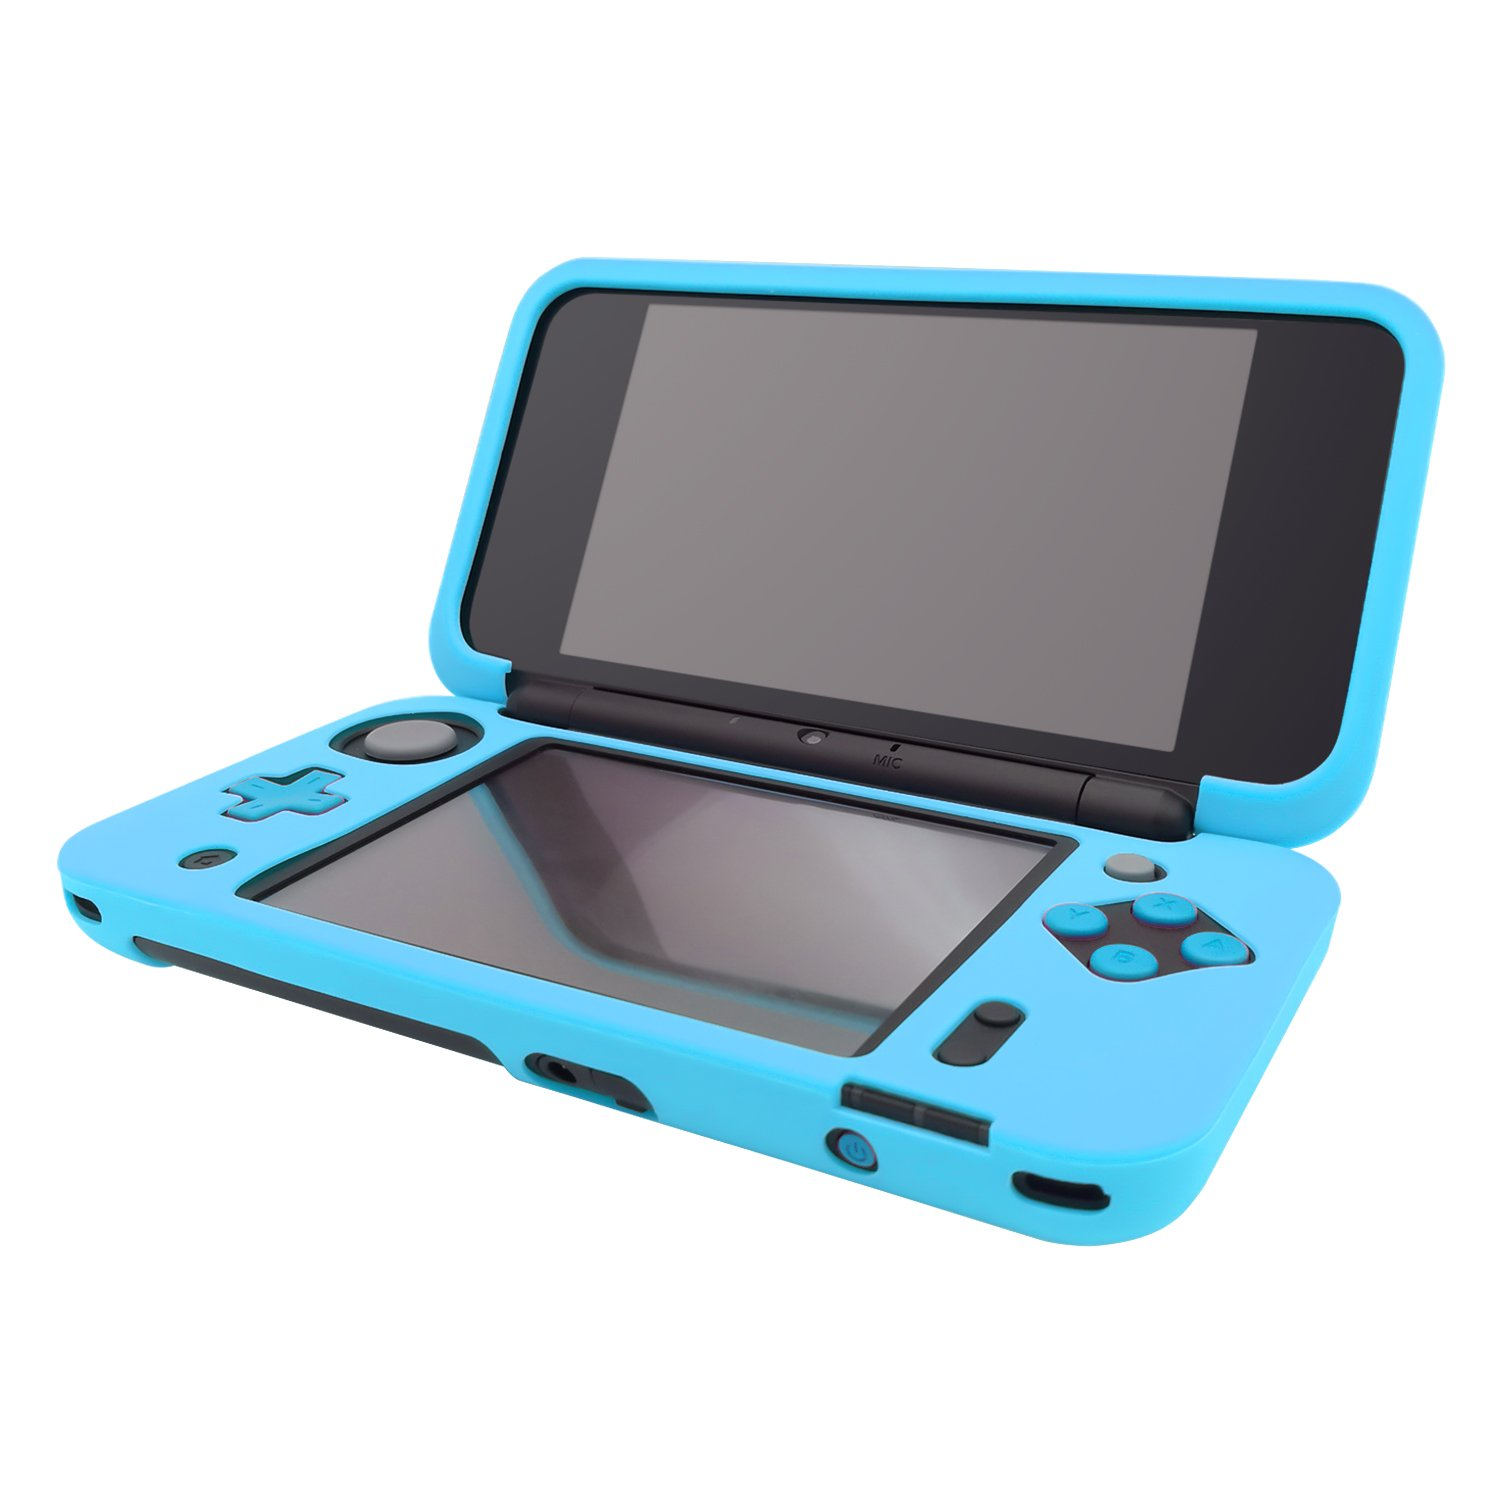 Amazon.com: Funda de silicona para Nintendo 2DS XL. Funda ...